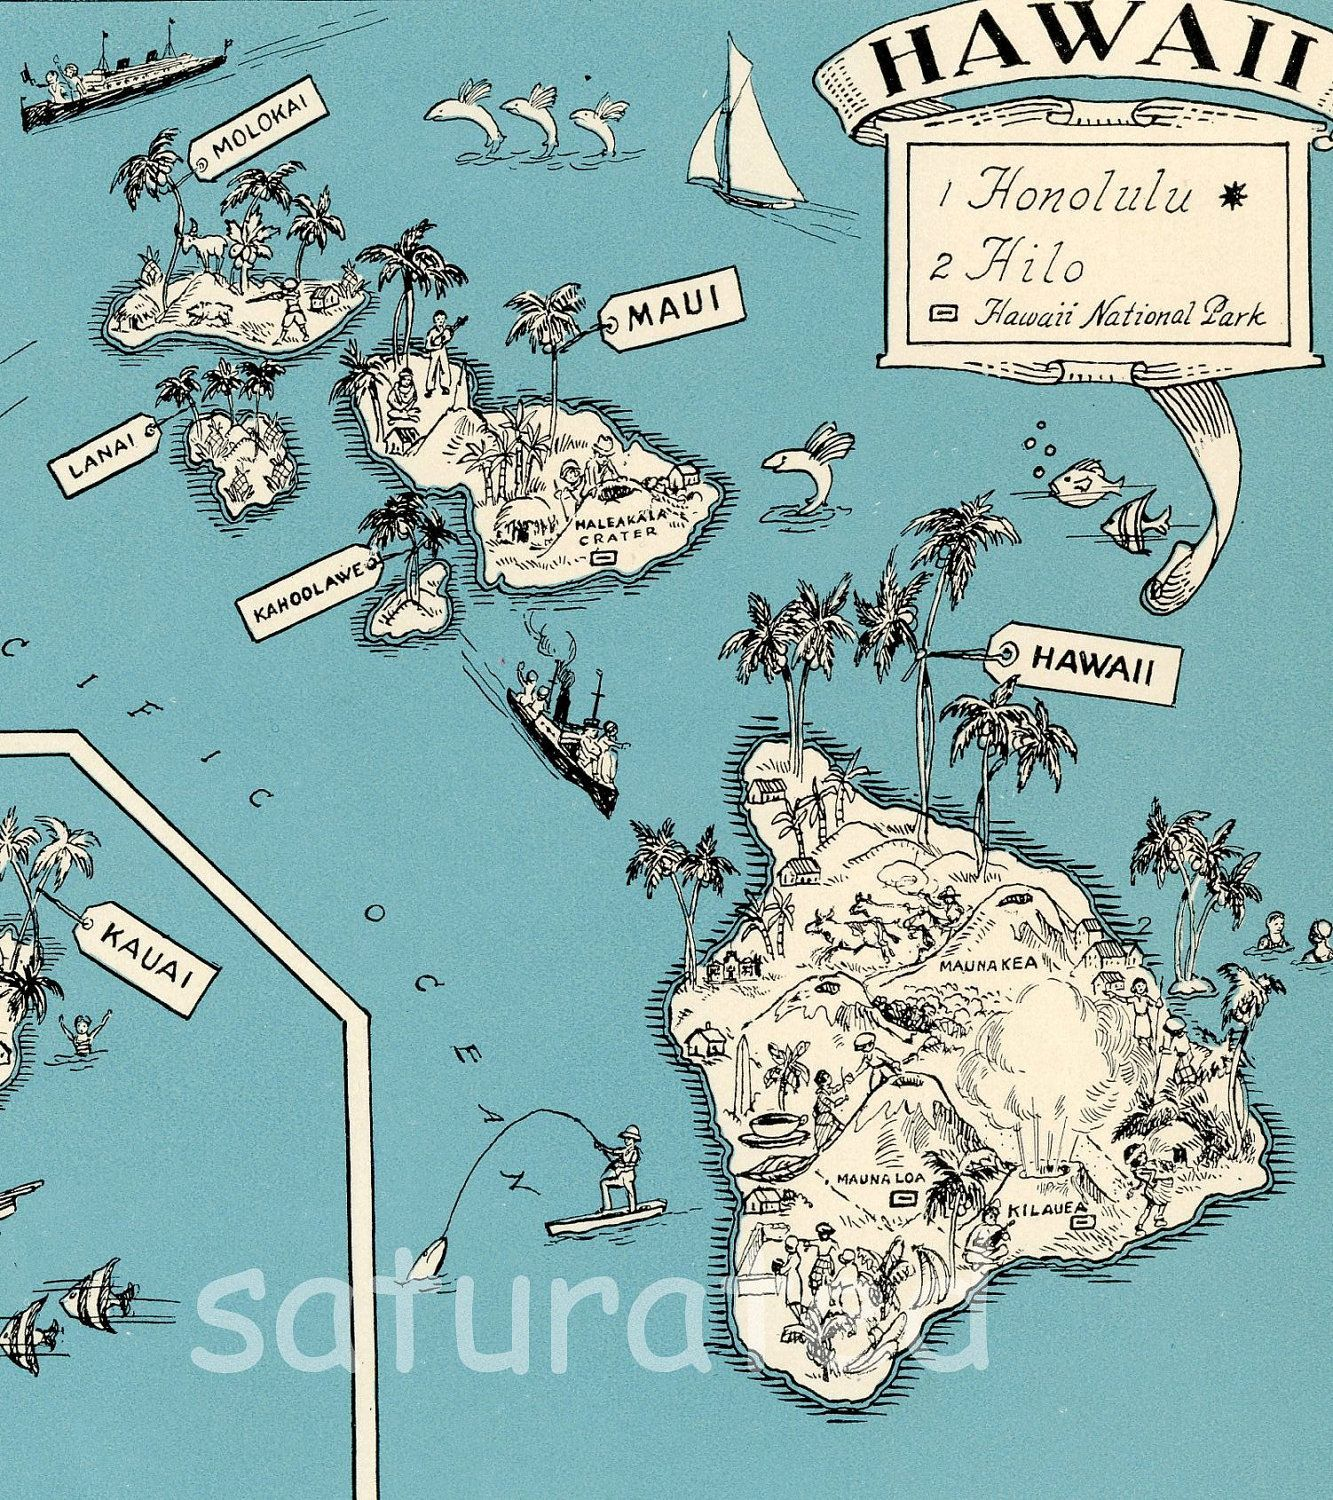 Hawaii Map Vintage - High Res DIGITAL IMAGE of a 1930s Vintage Picture Map - Aqua Turquoise - Charming & Fun